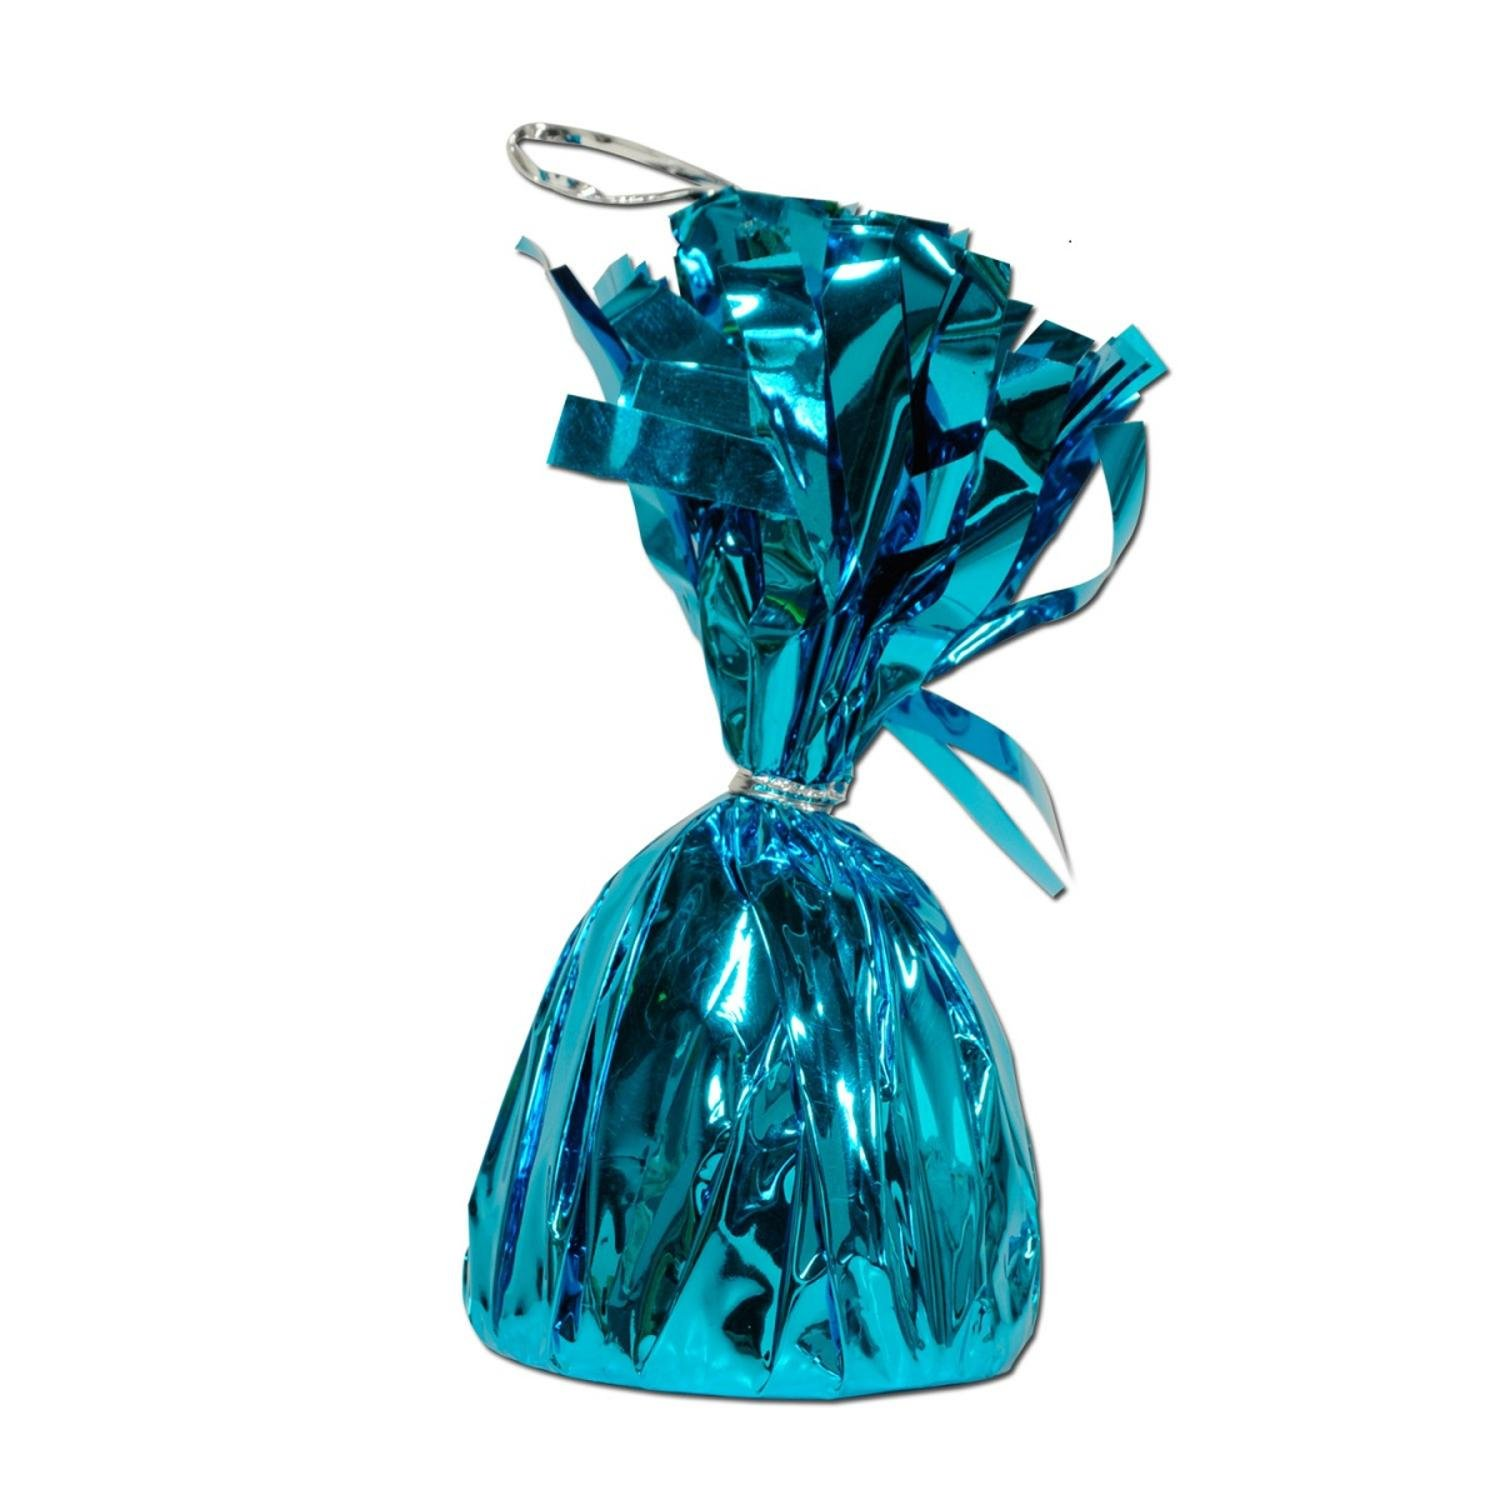 Club Pack of 12 Metallic Turquoise Party Balloon Weight Decorative Birthday Centerpieces 6 oz.